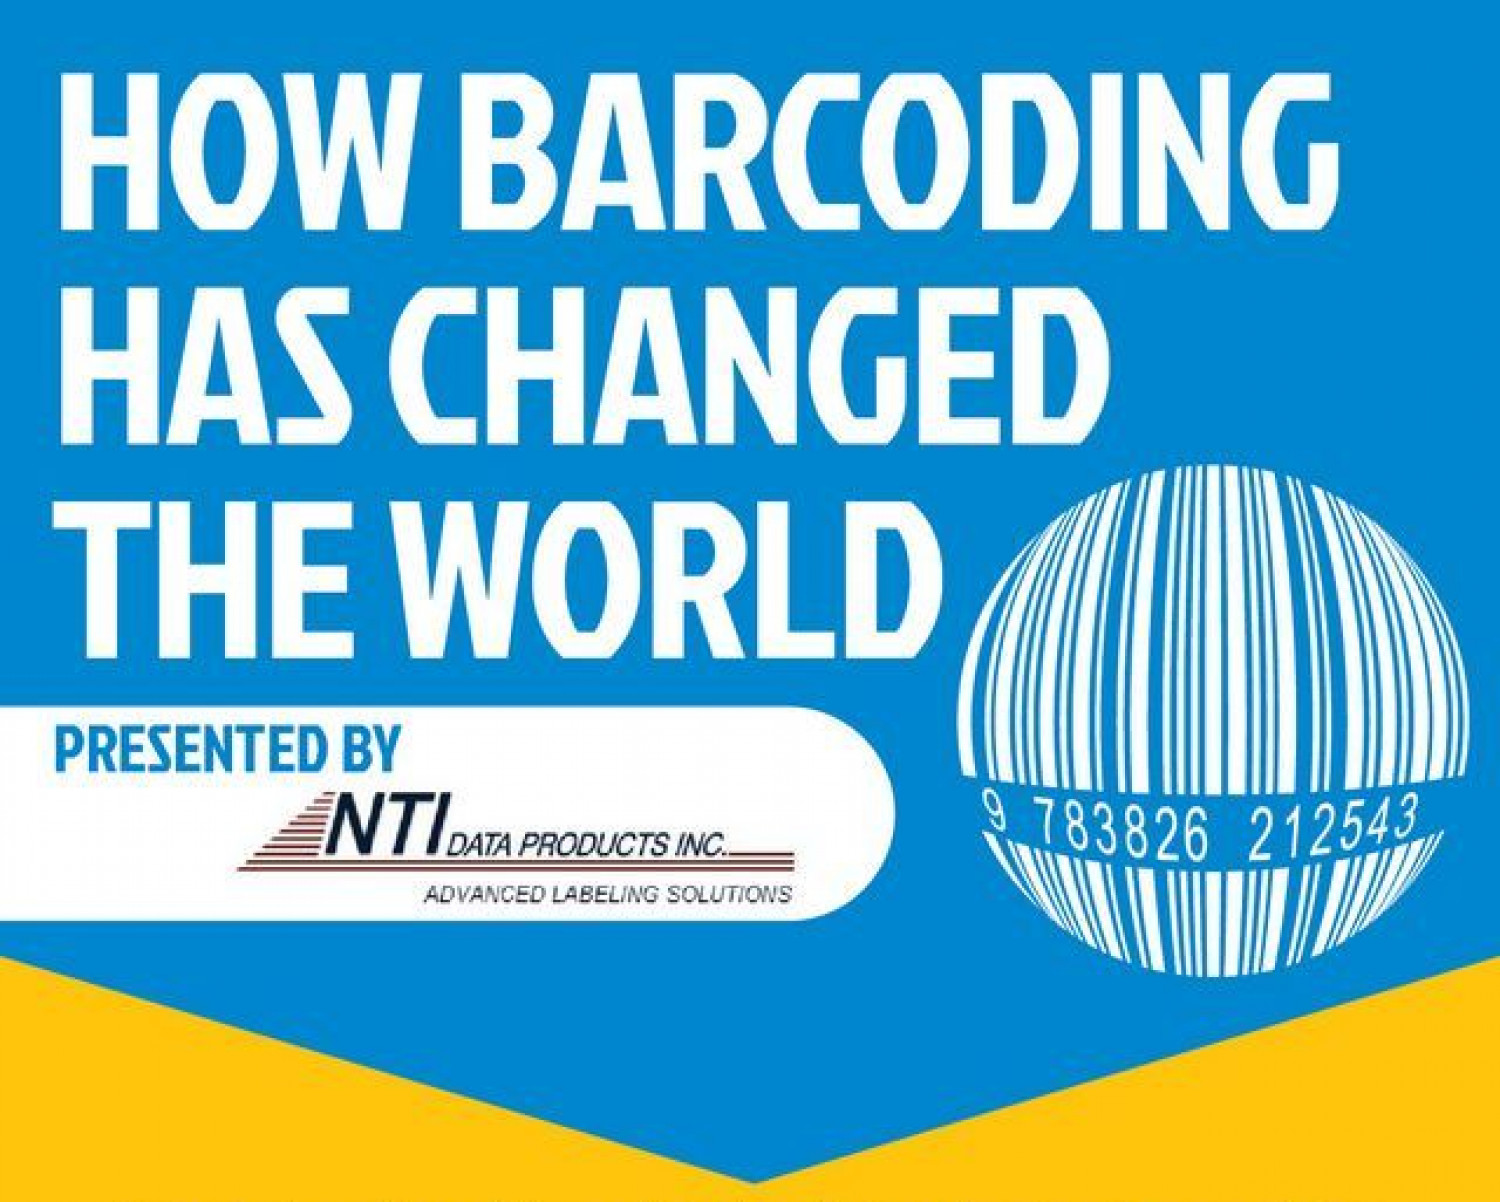 How Barcoding Has Changed the World Infographic